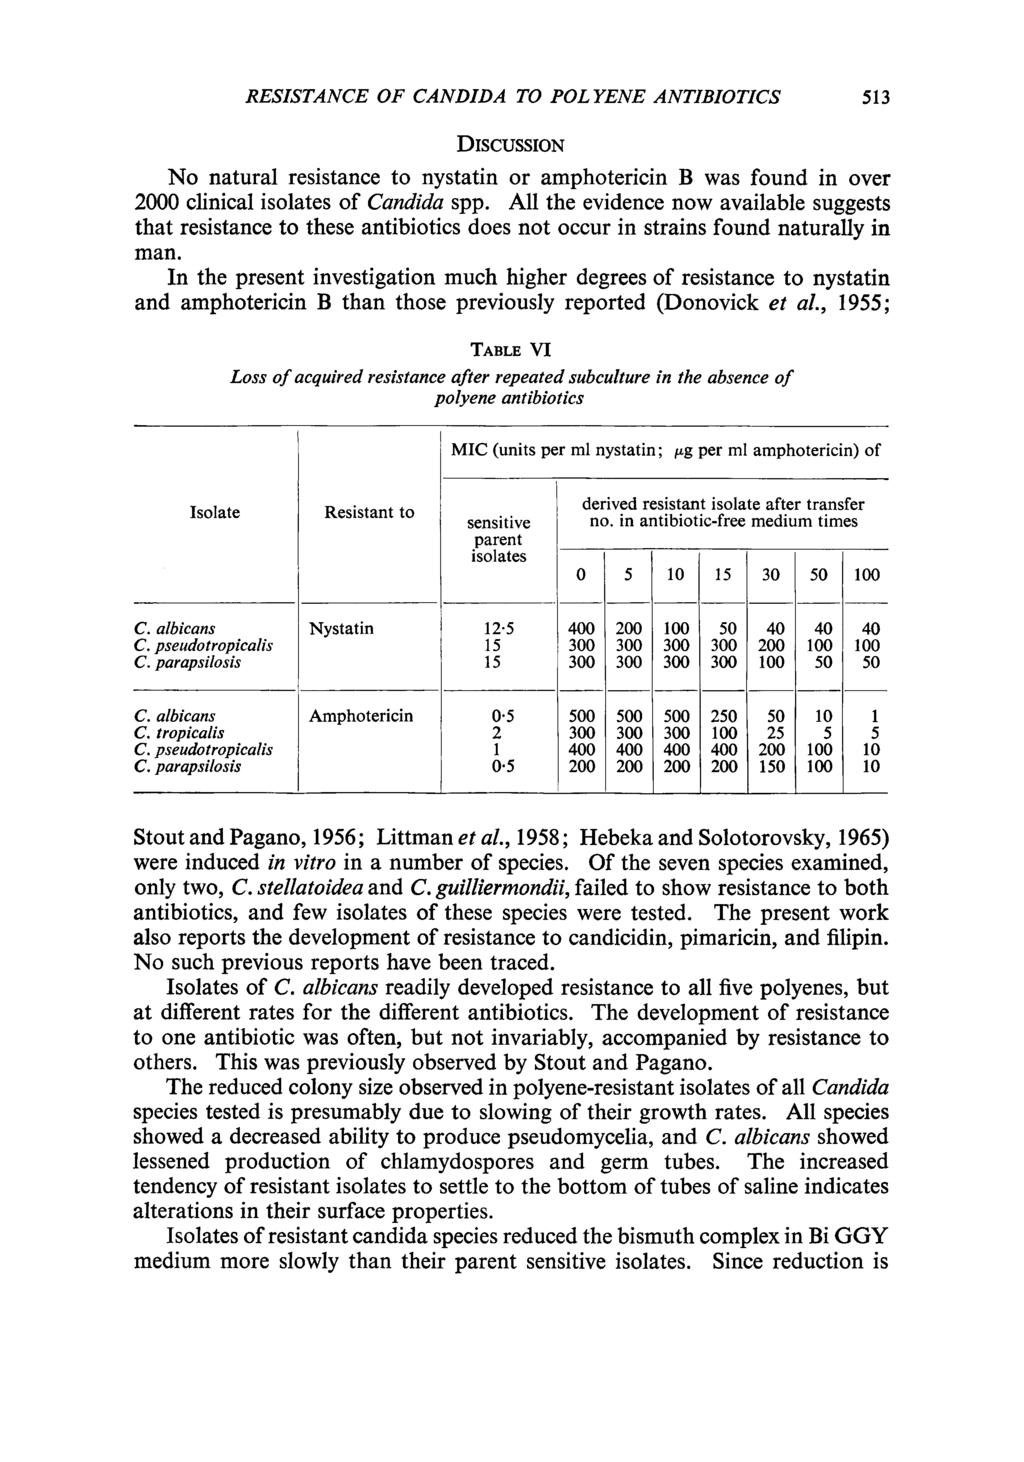 RESISTANCE OF CANDIDA TO POL YENE ANTIBIOTICS 513 DISCUSSION No natural resistance to nystatin or amphotericin B was found in over 2 clinical isolates of Candida spp.